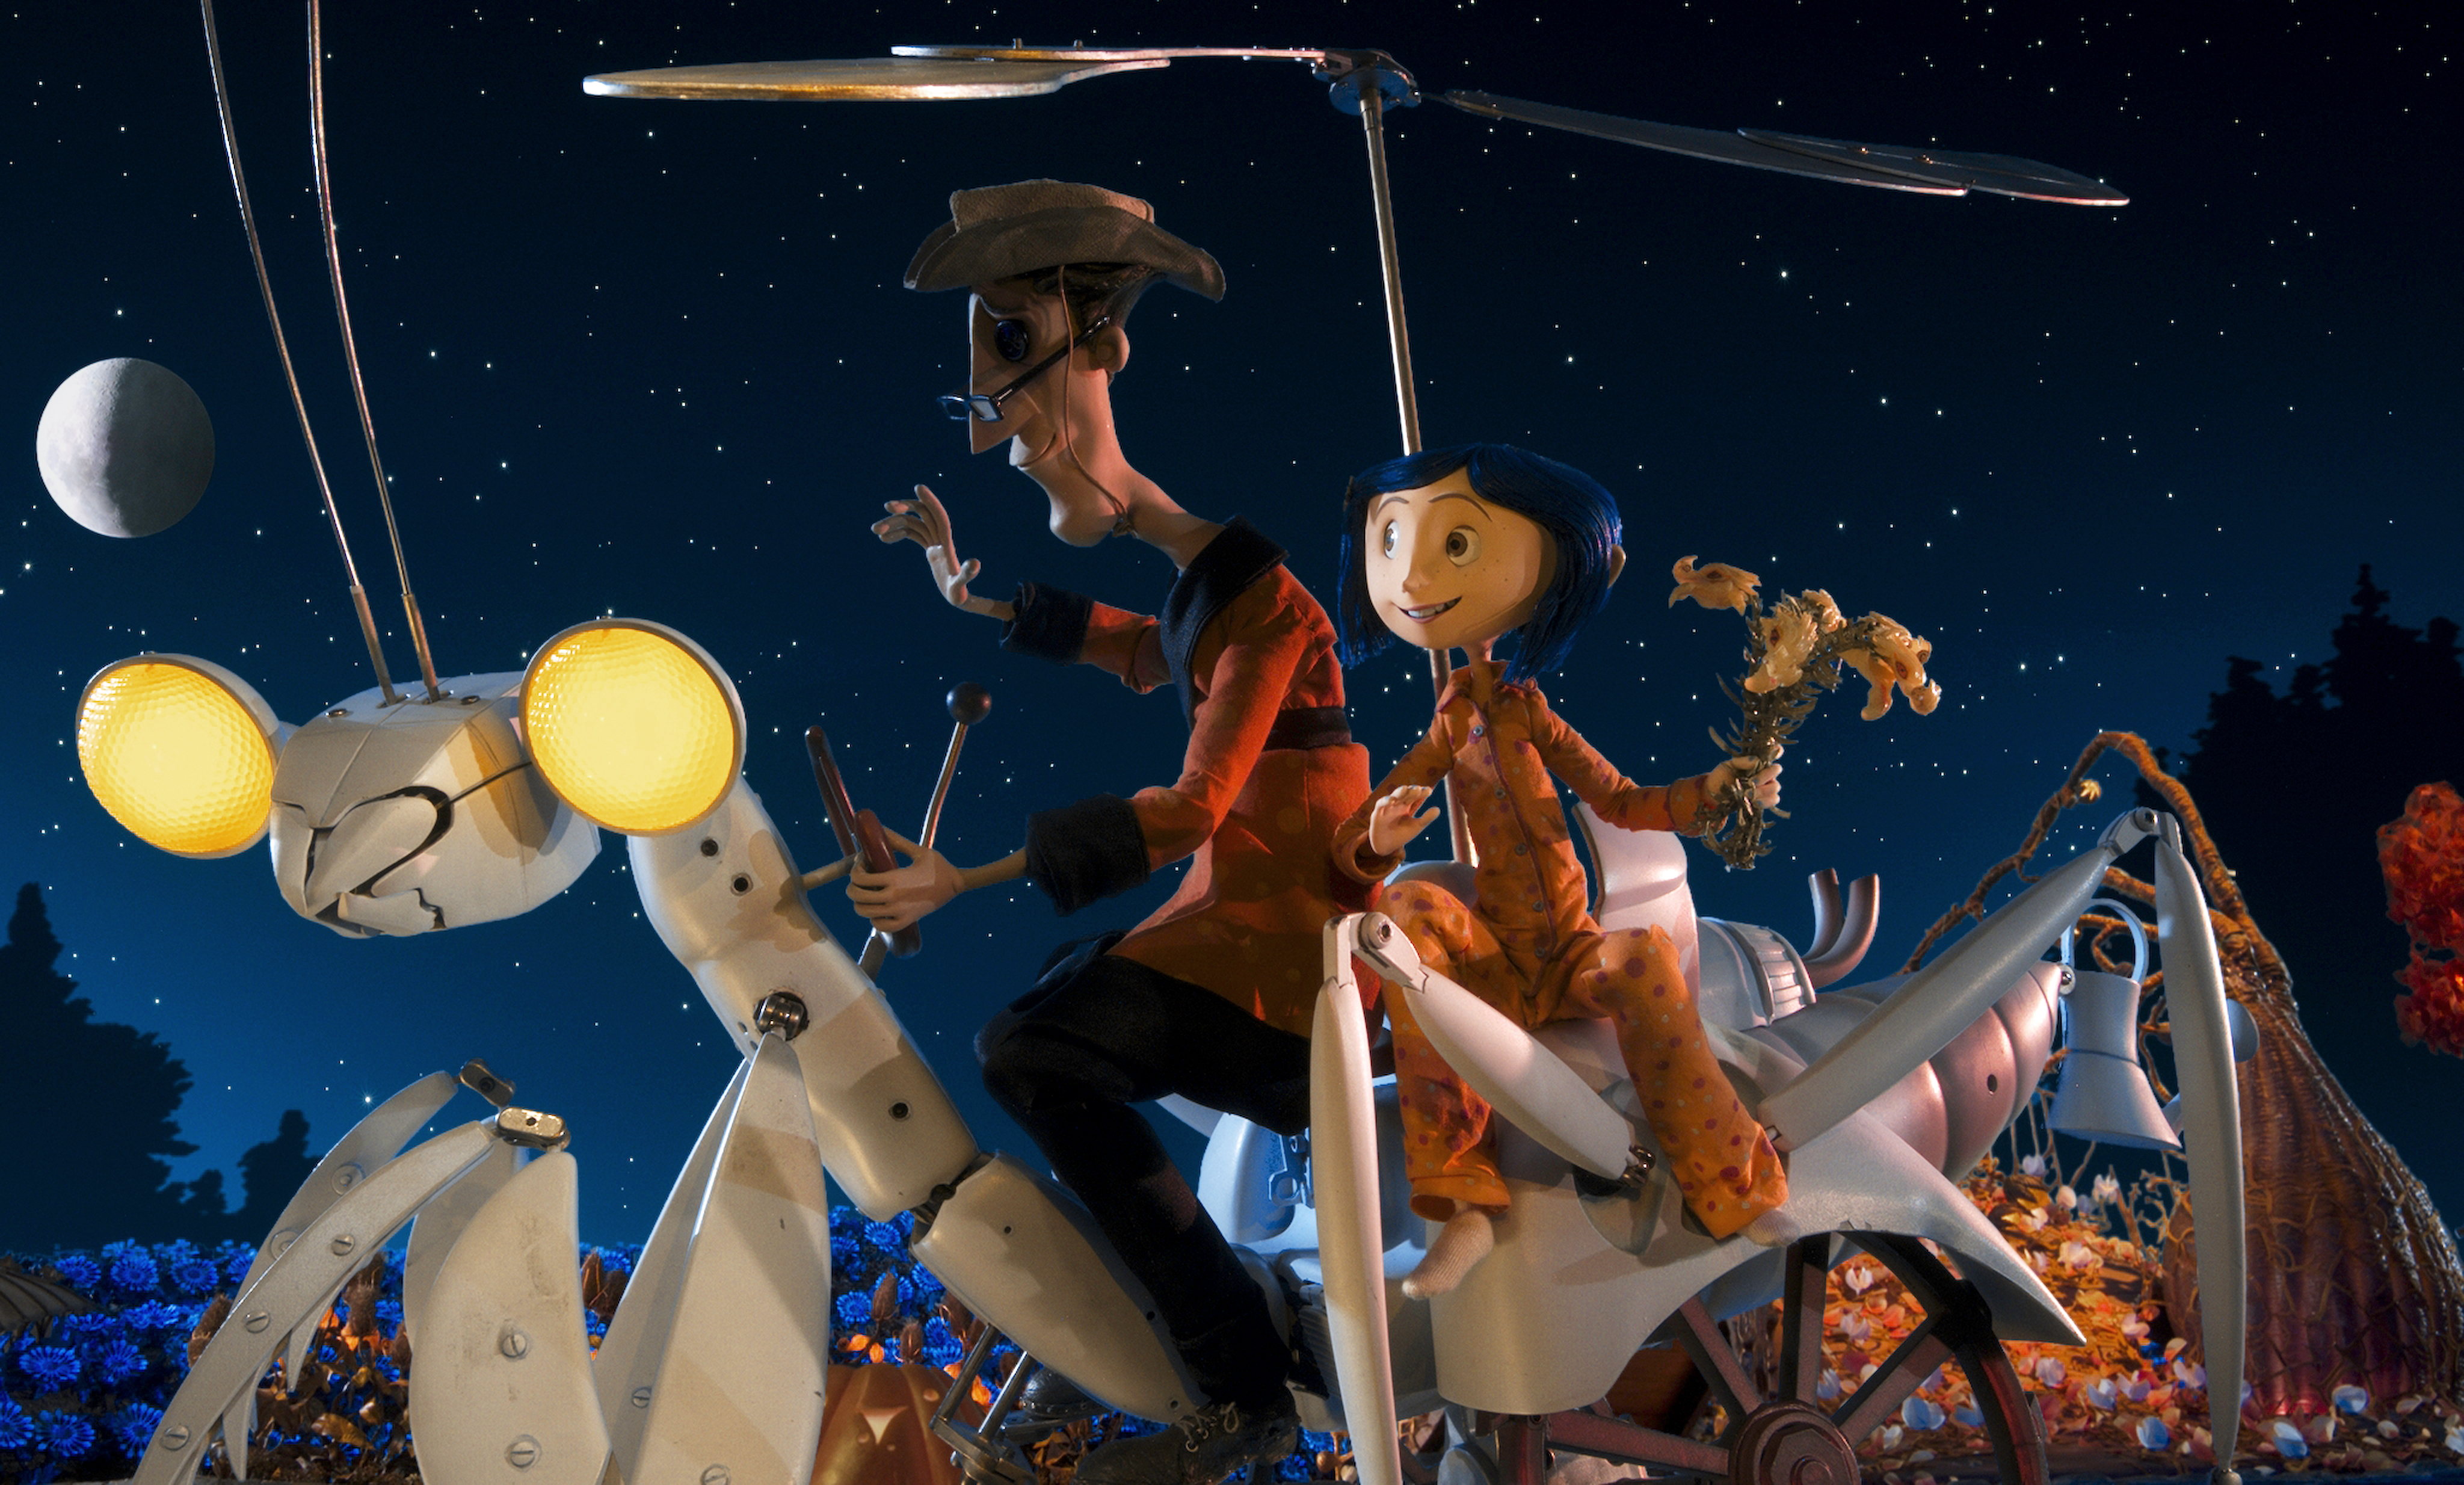 Other Father and Coraline take a ride on a mechanical mantis.